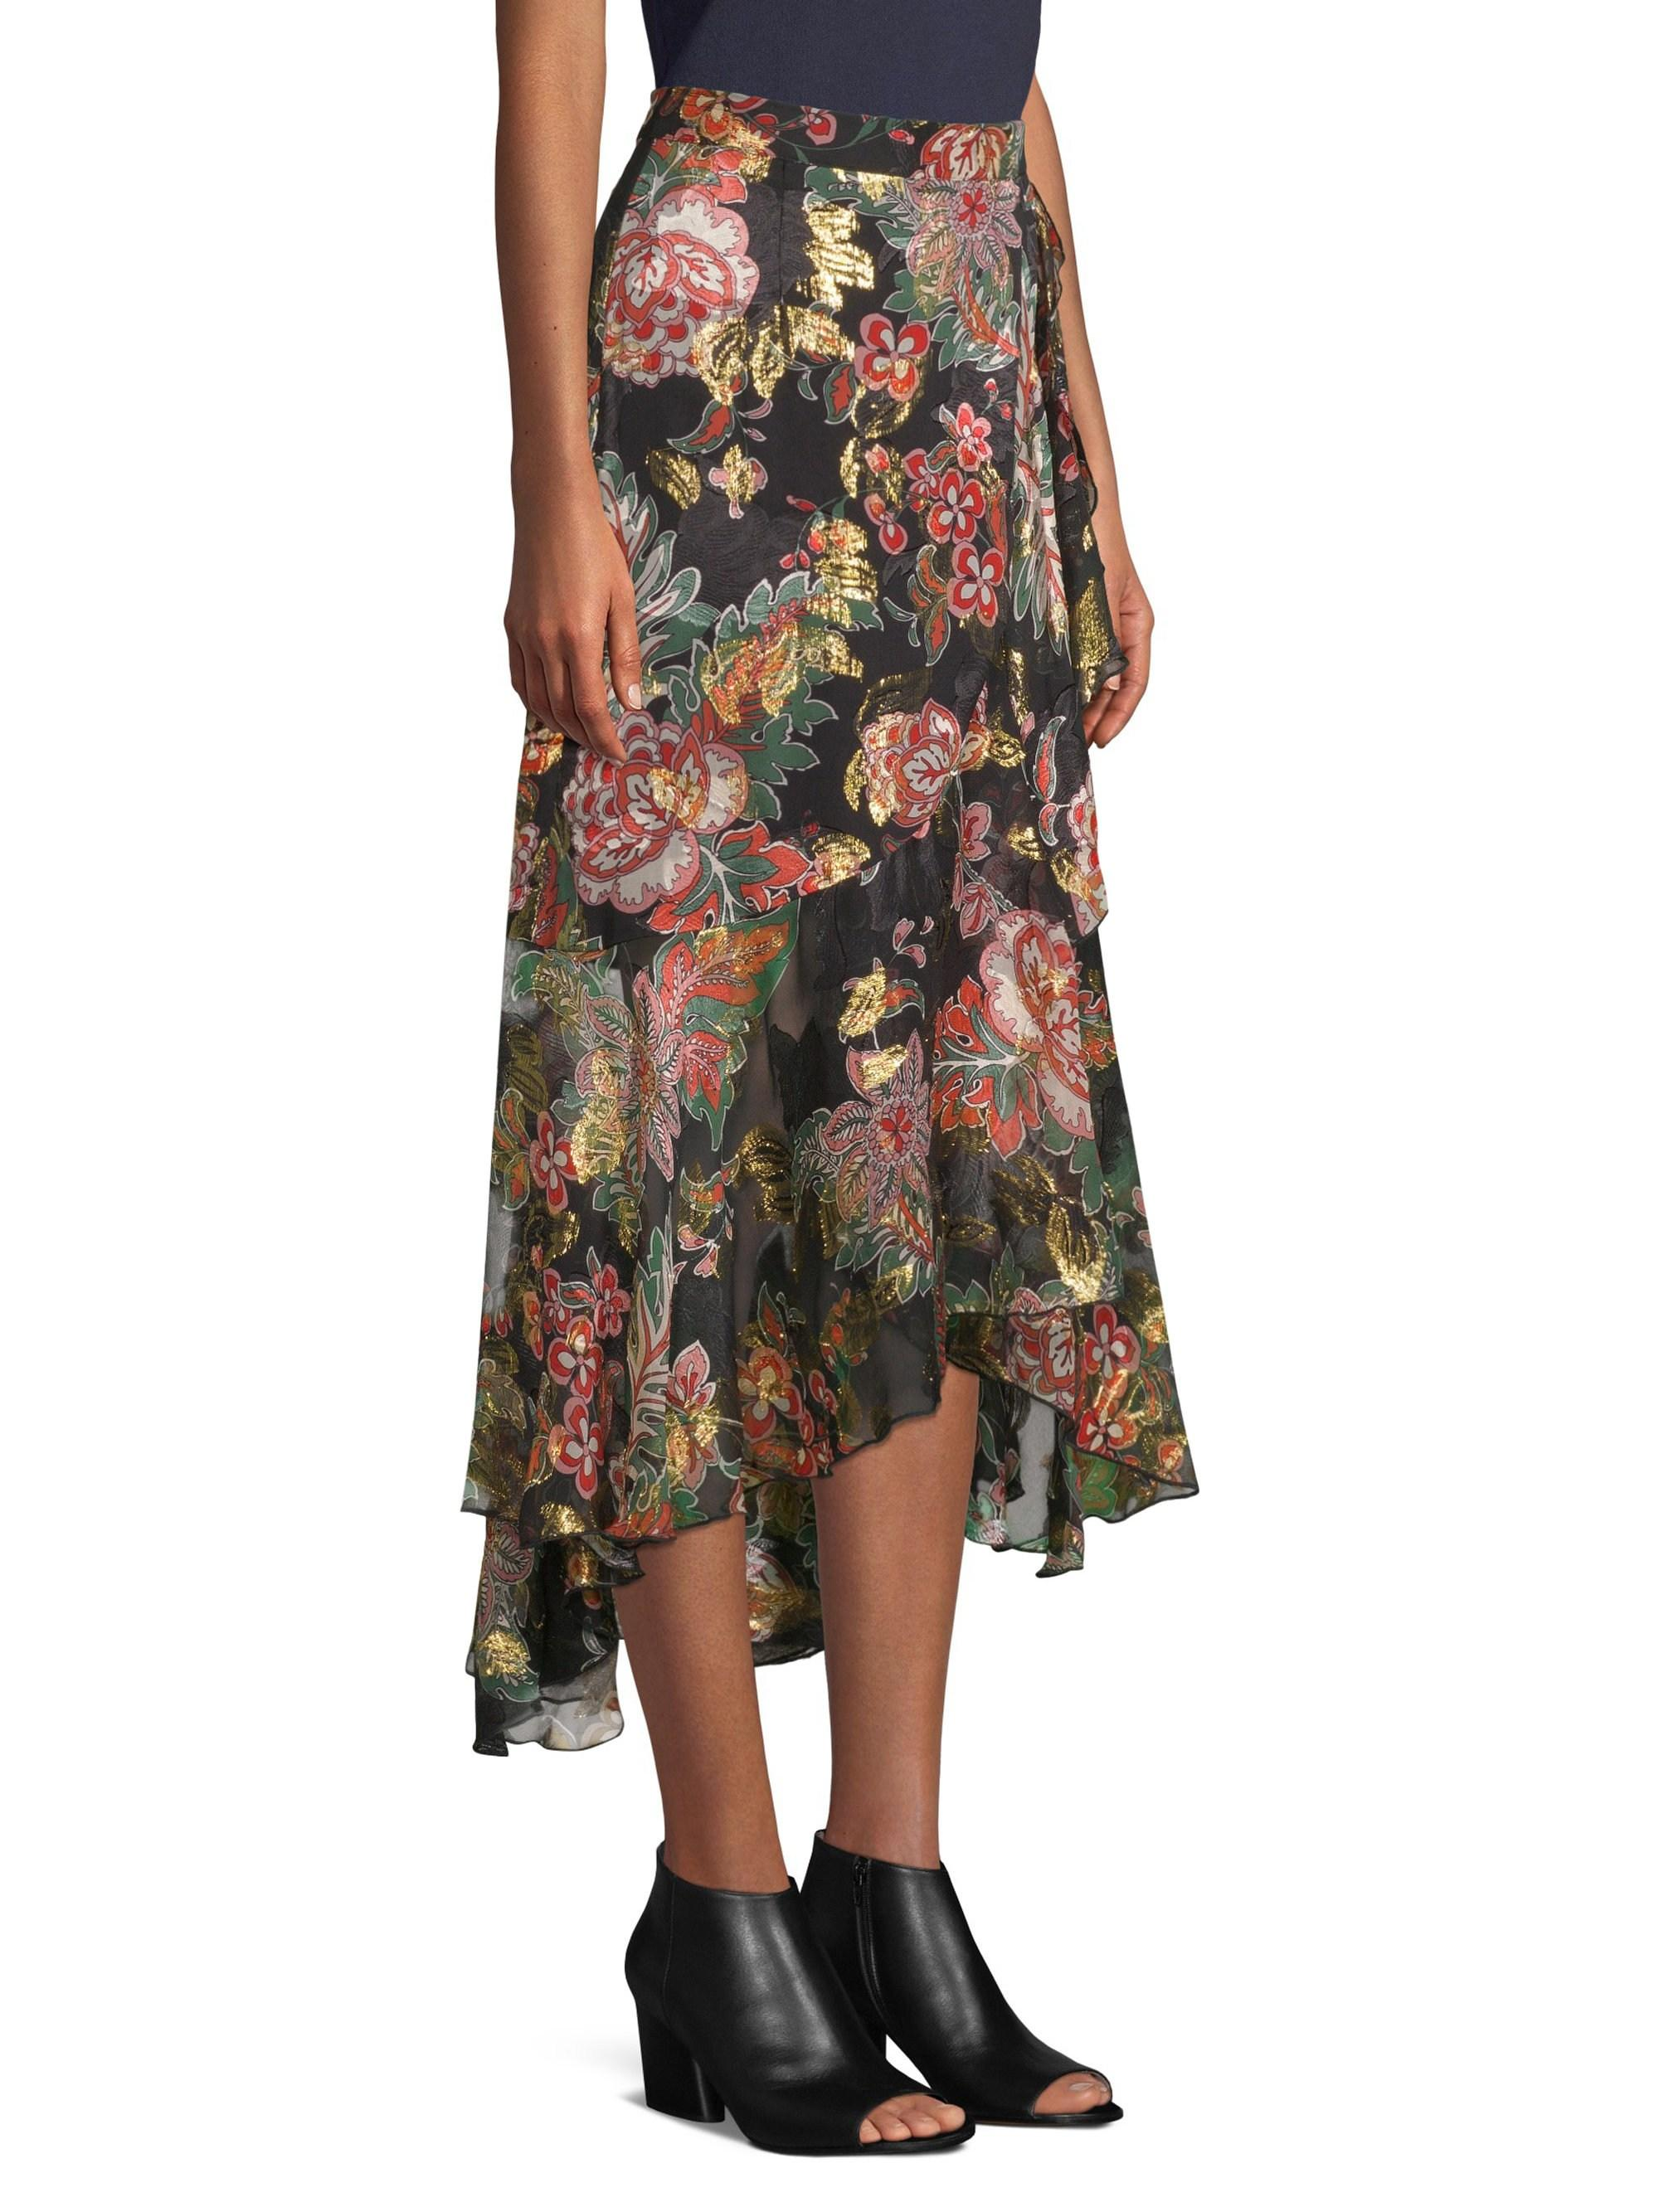 9e5abe65a2f The Kooples Women's Floral Frill Silk Midi Skirt - Black - Size M in ...